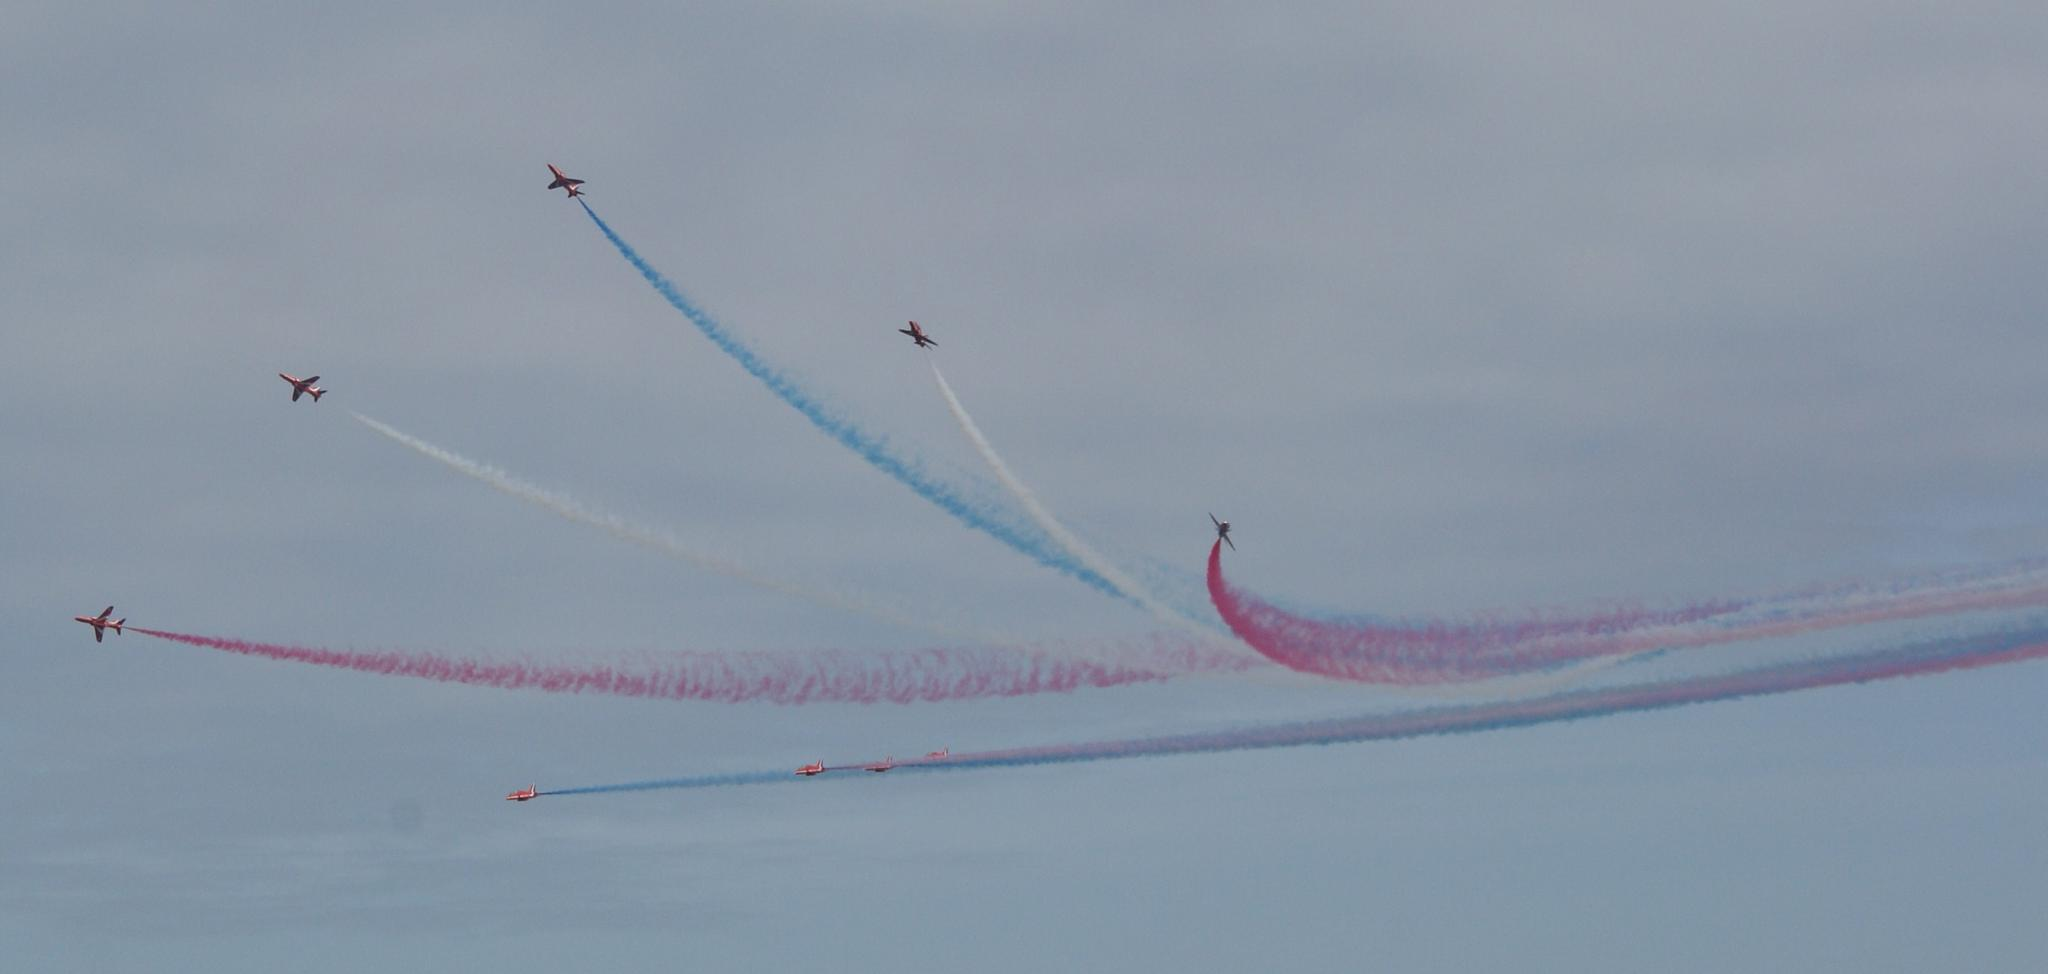 Red Arrows by george.mcmenemy.7